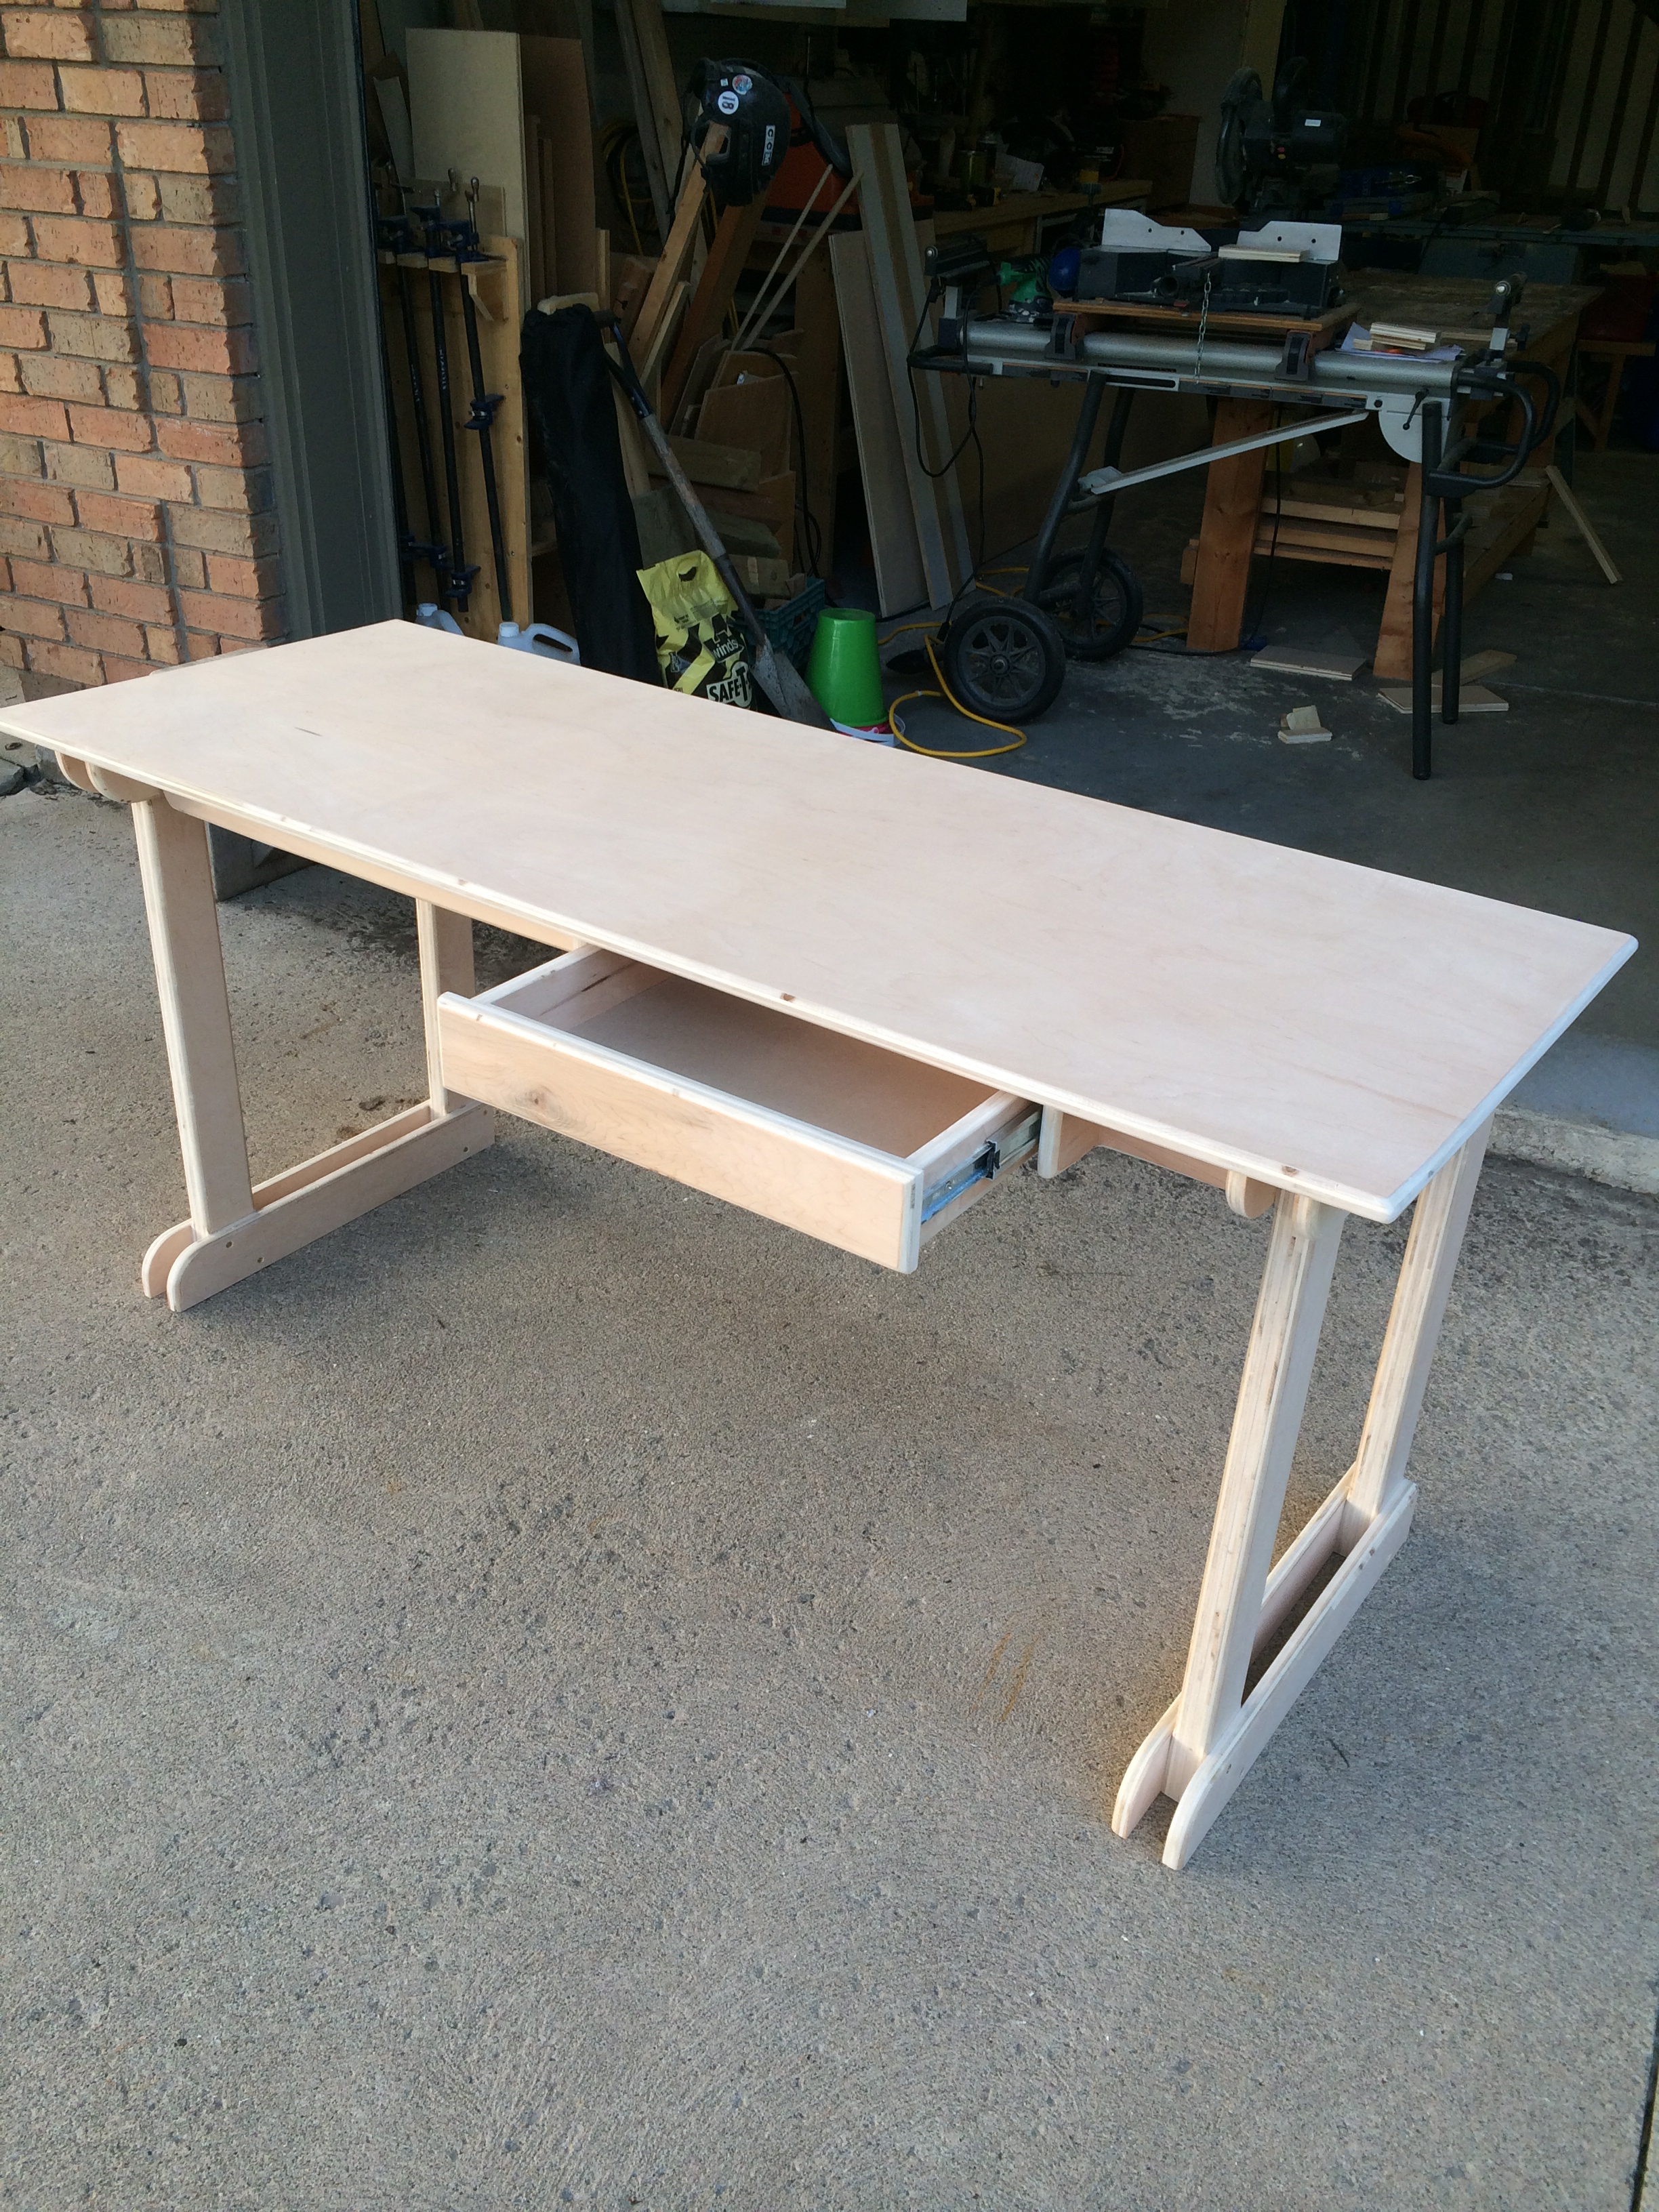 Ana White Plywood Student Desk Diy Projects